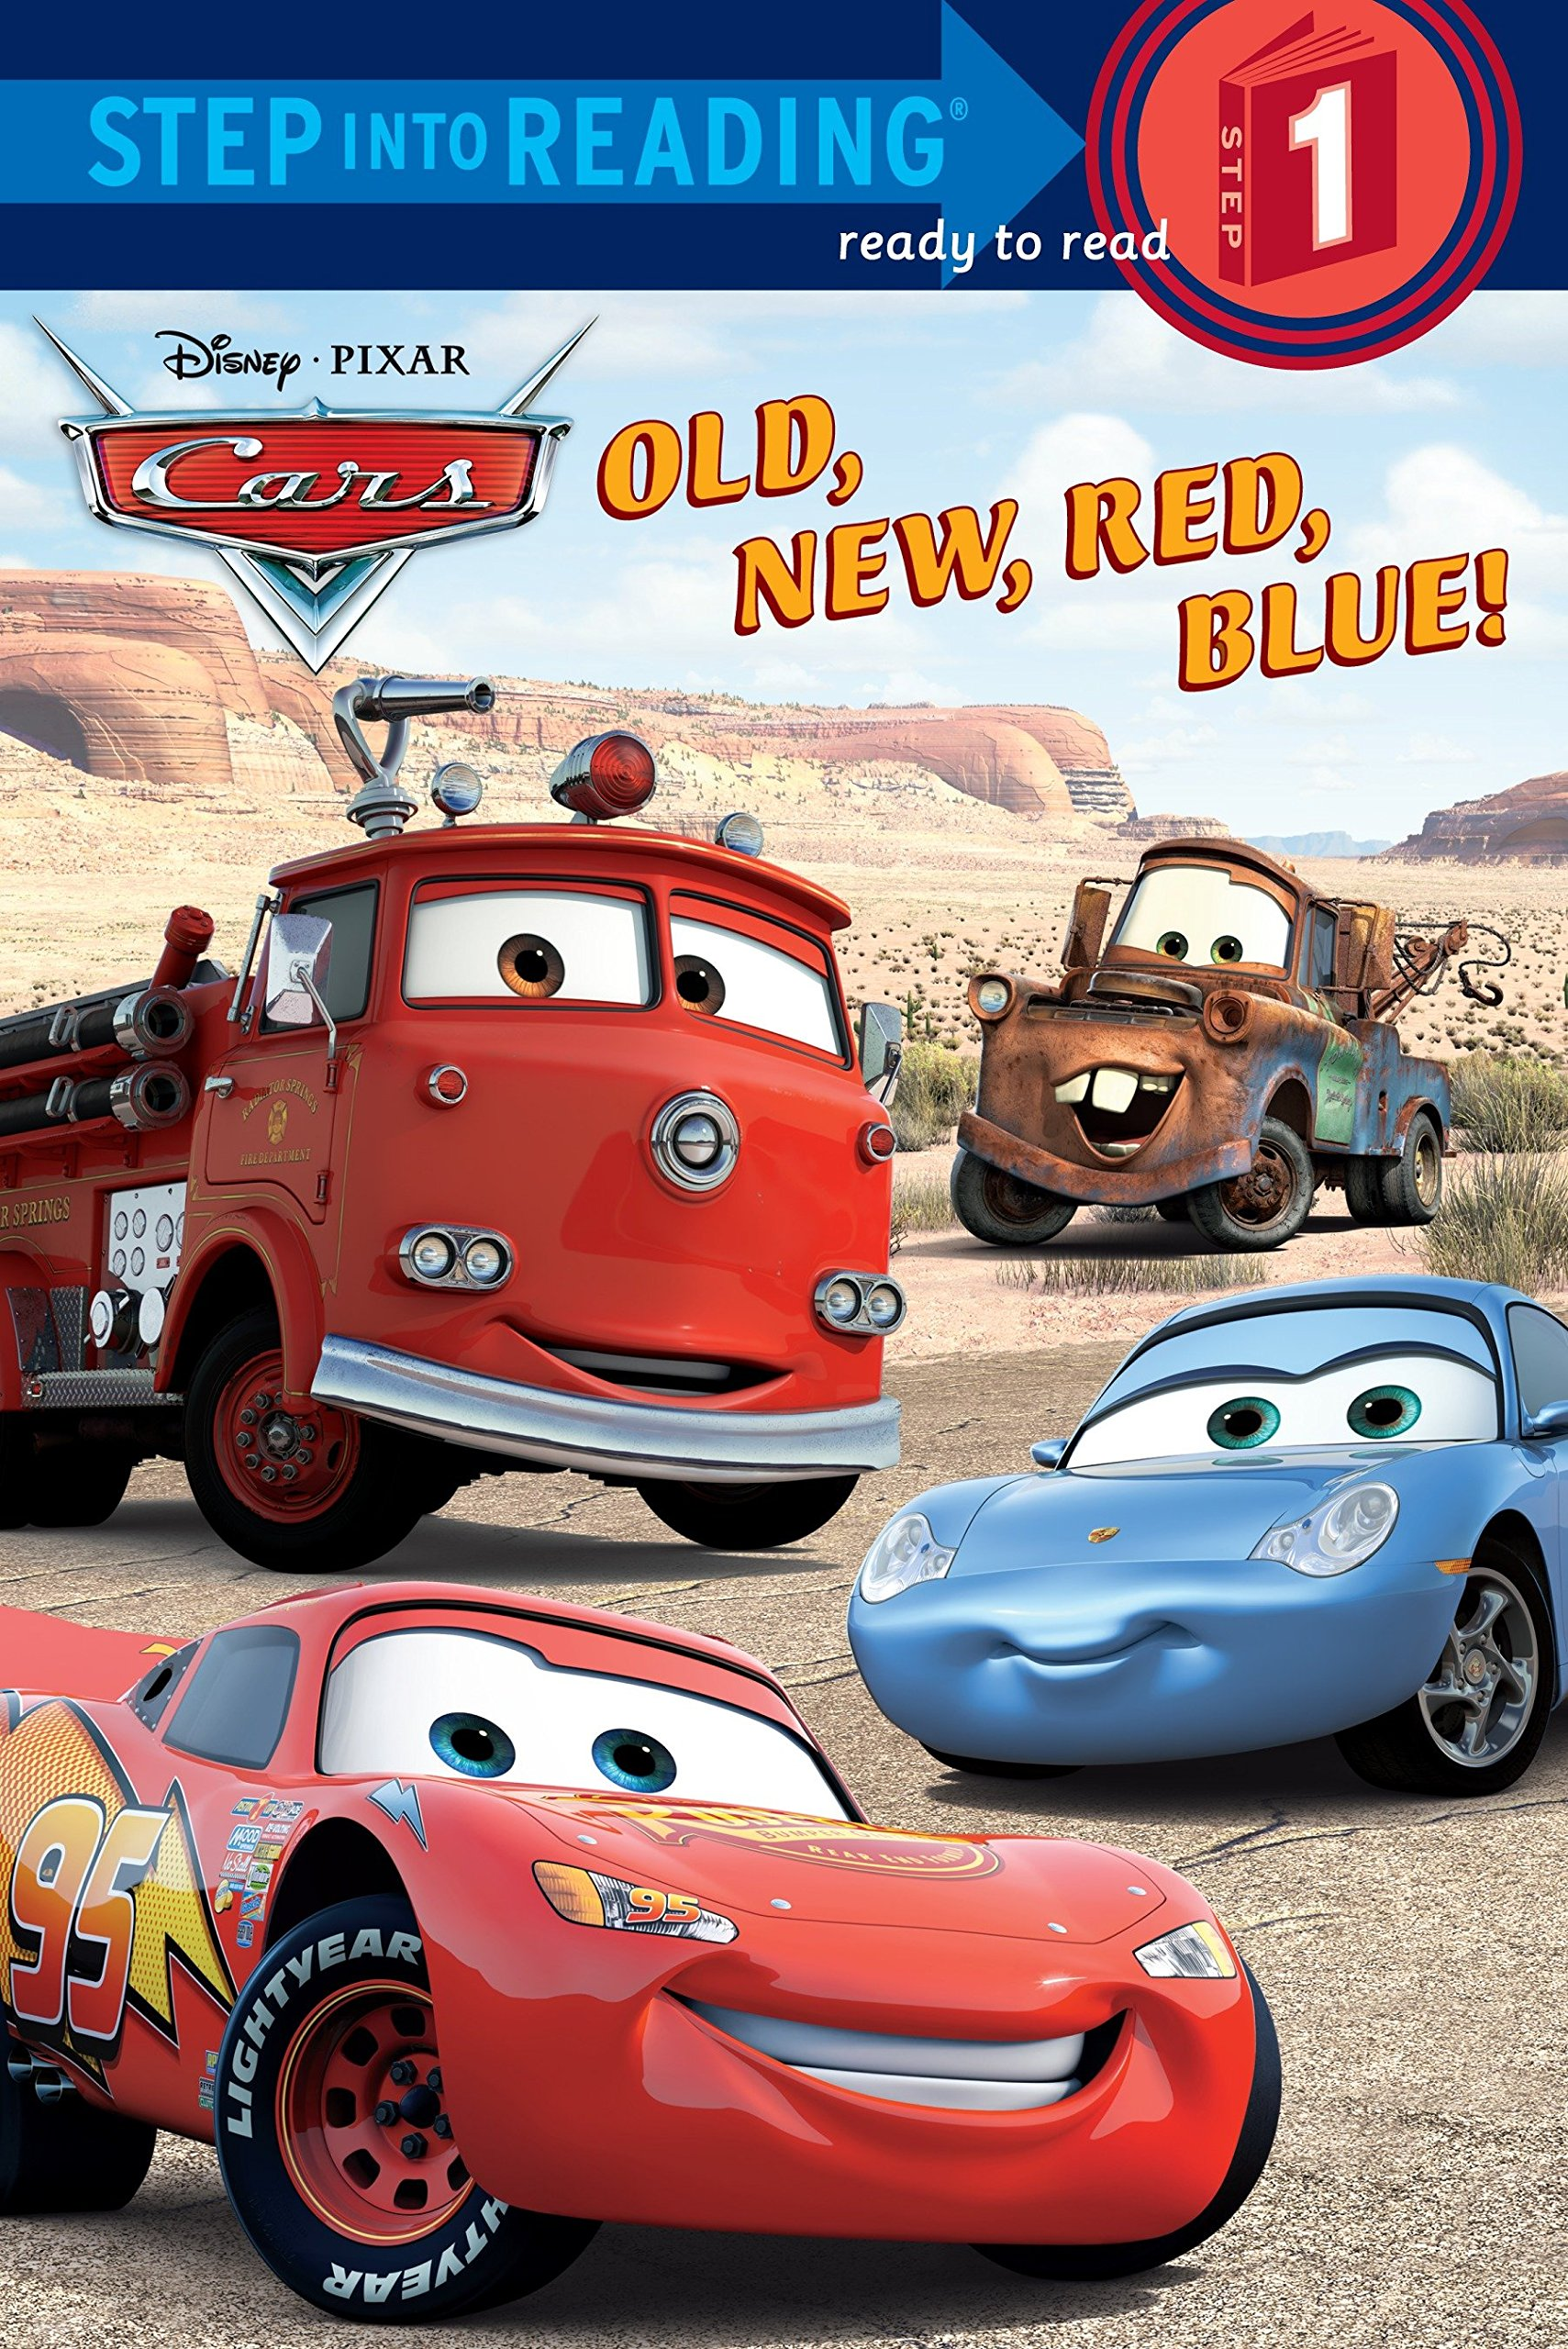 Download Old, New, Red, Blue! (Step into Reading) (Cars movie tie in) pdf